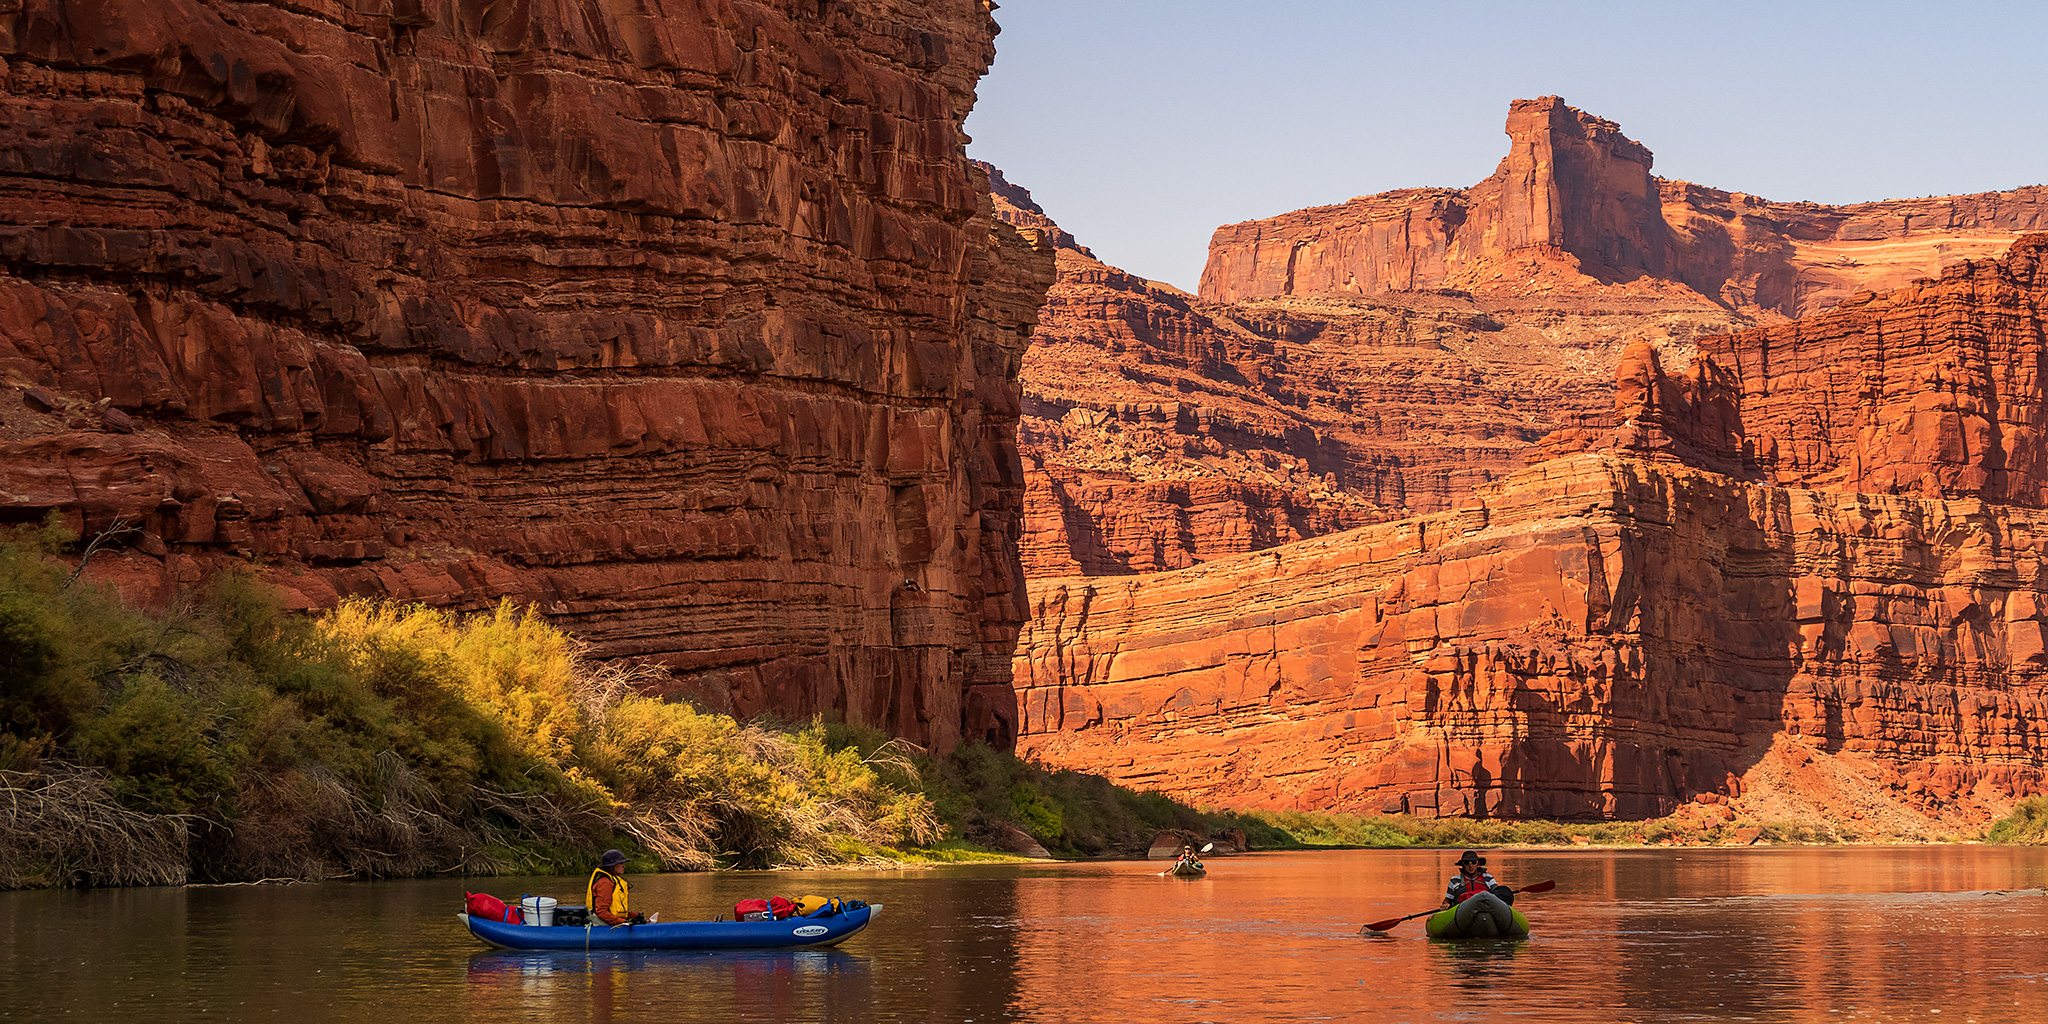 Meander Canyon: The Colorado River in Canyonlands